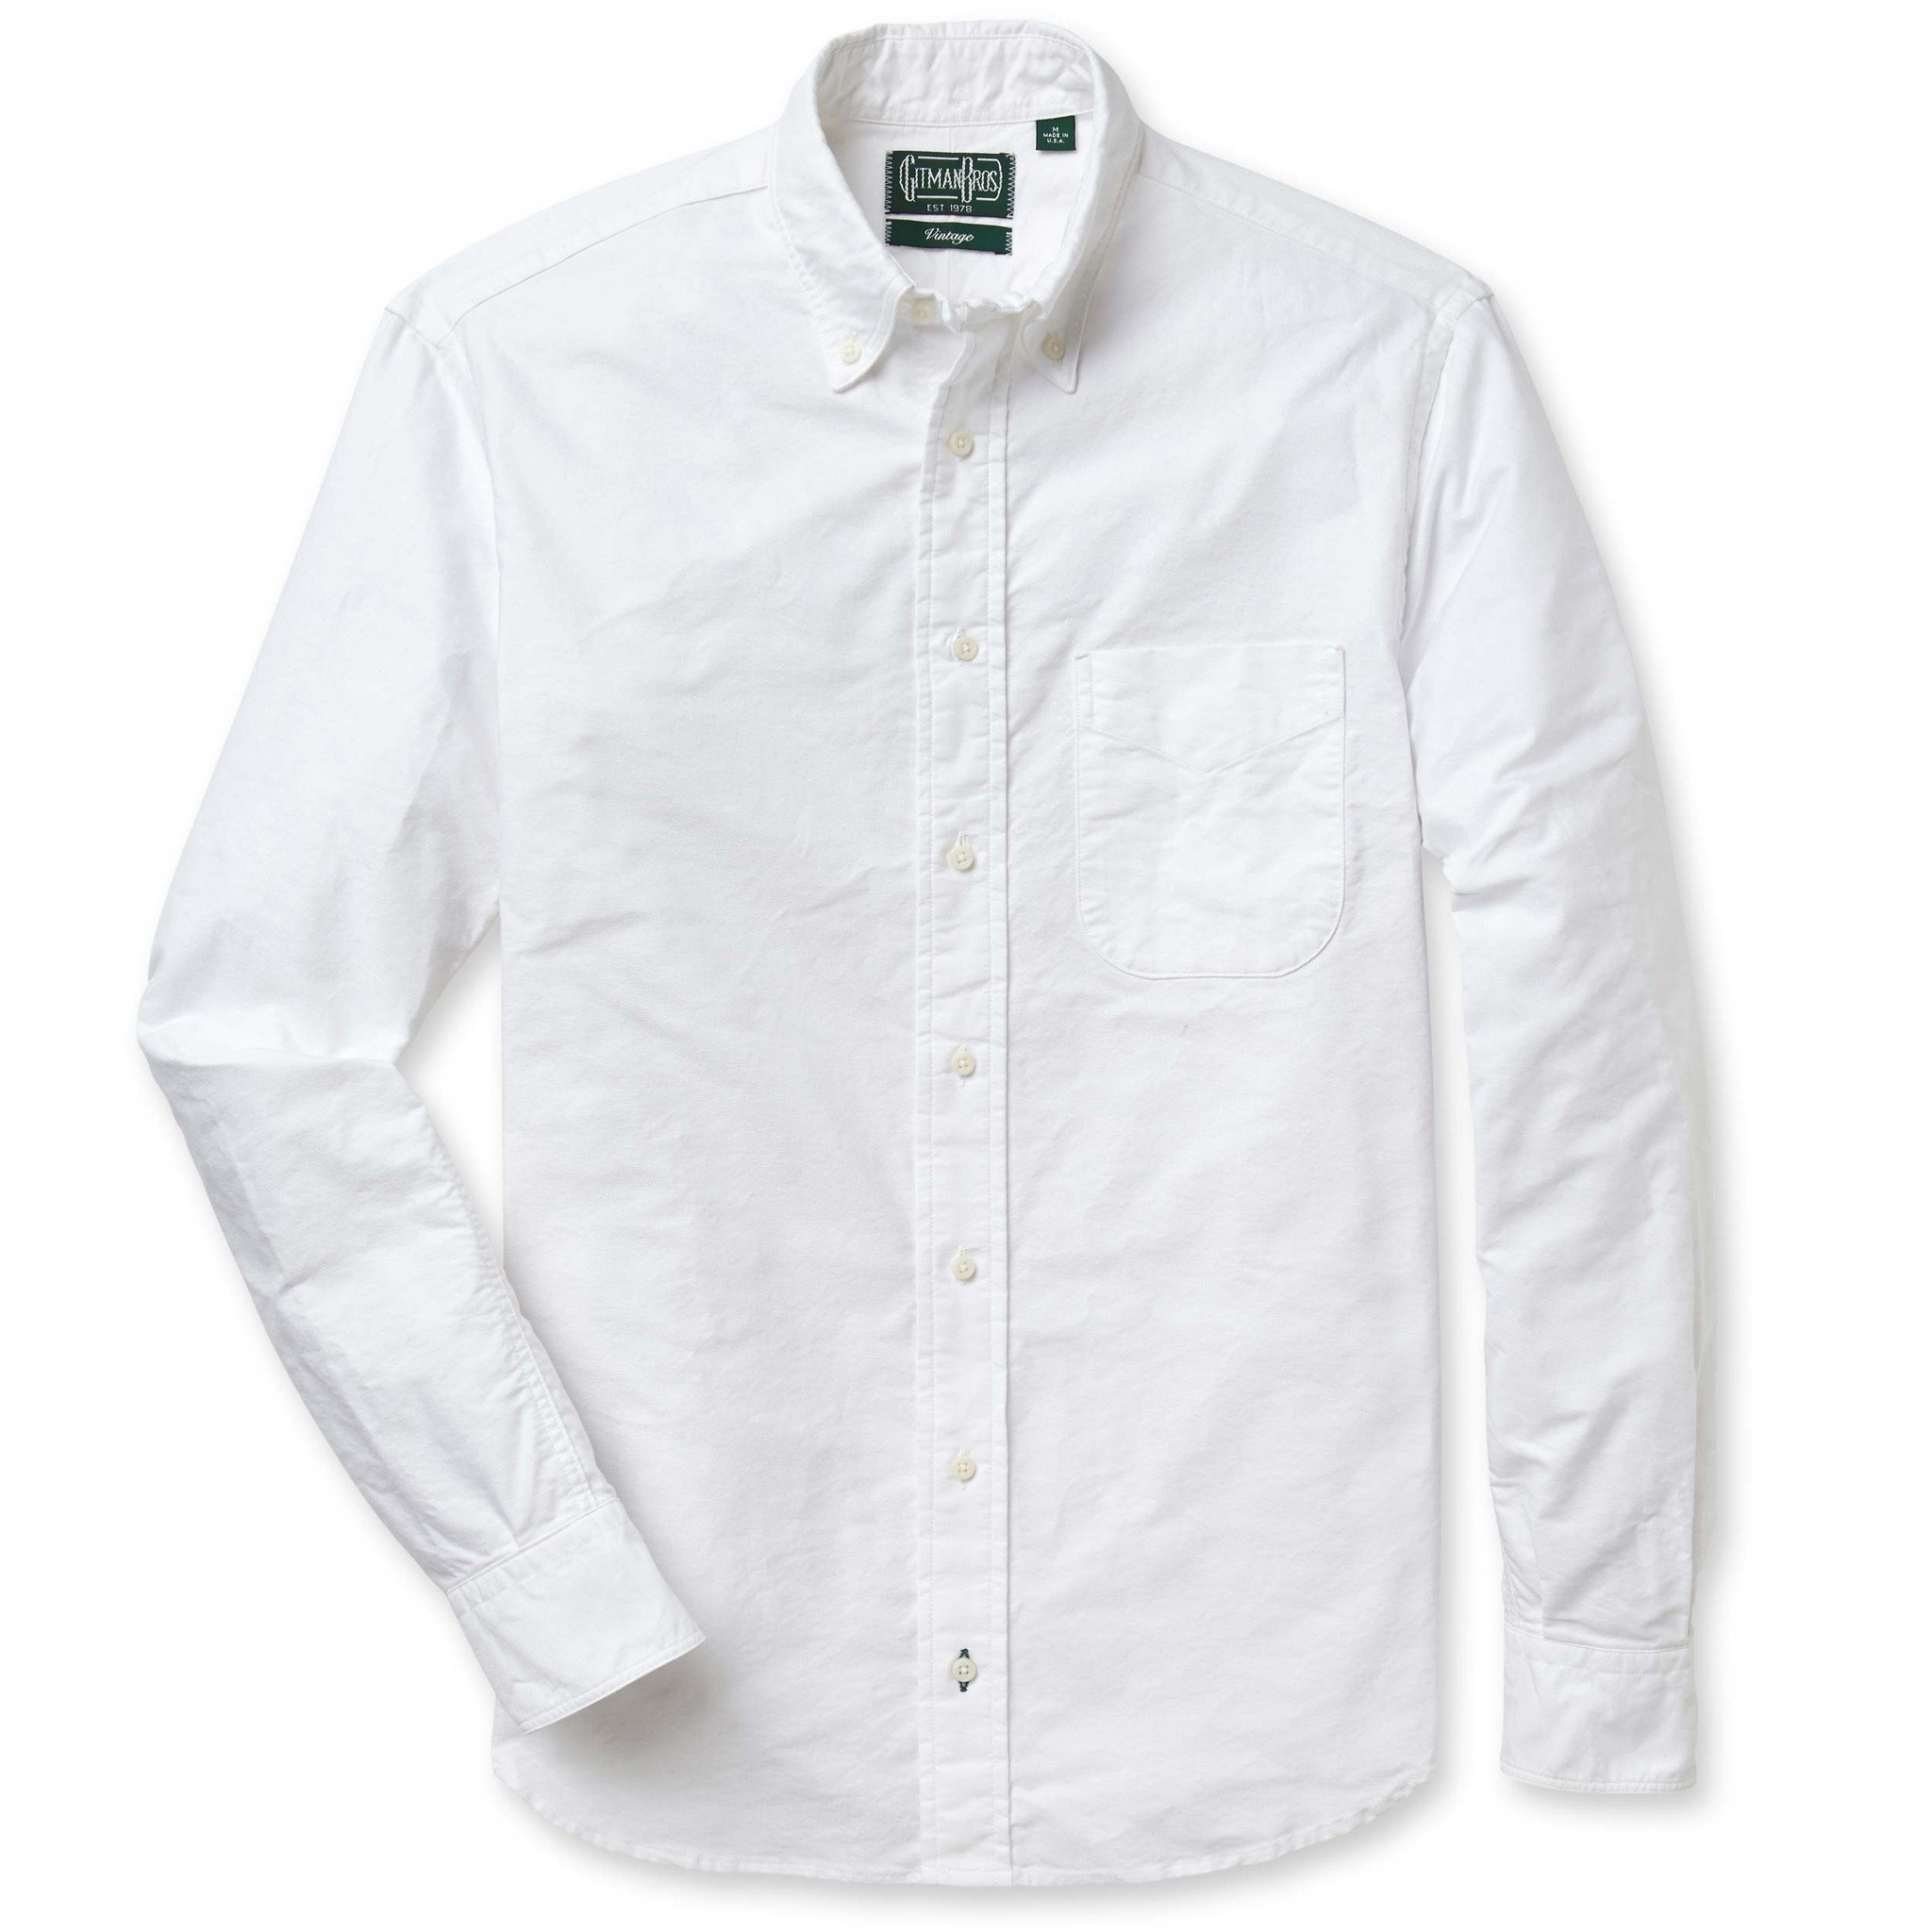 oxford shirt white oxford awzlnmq